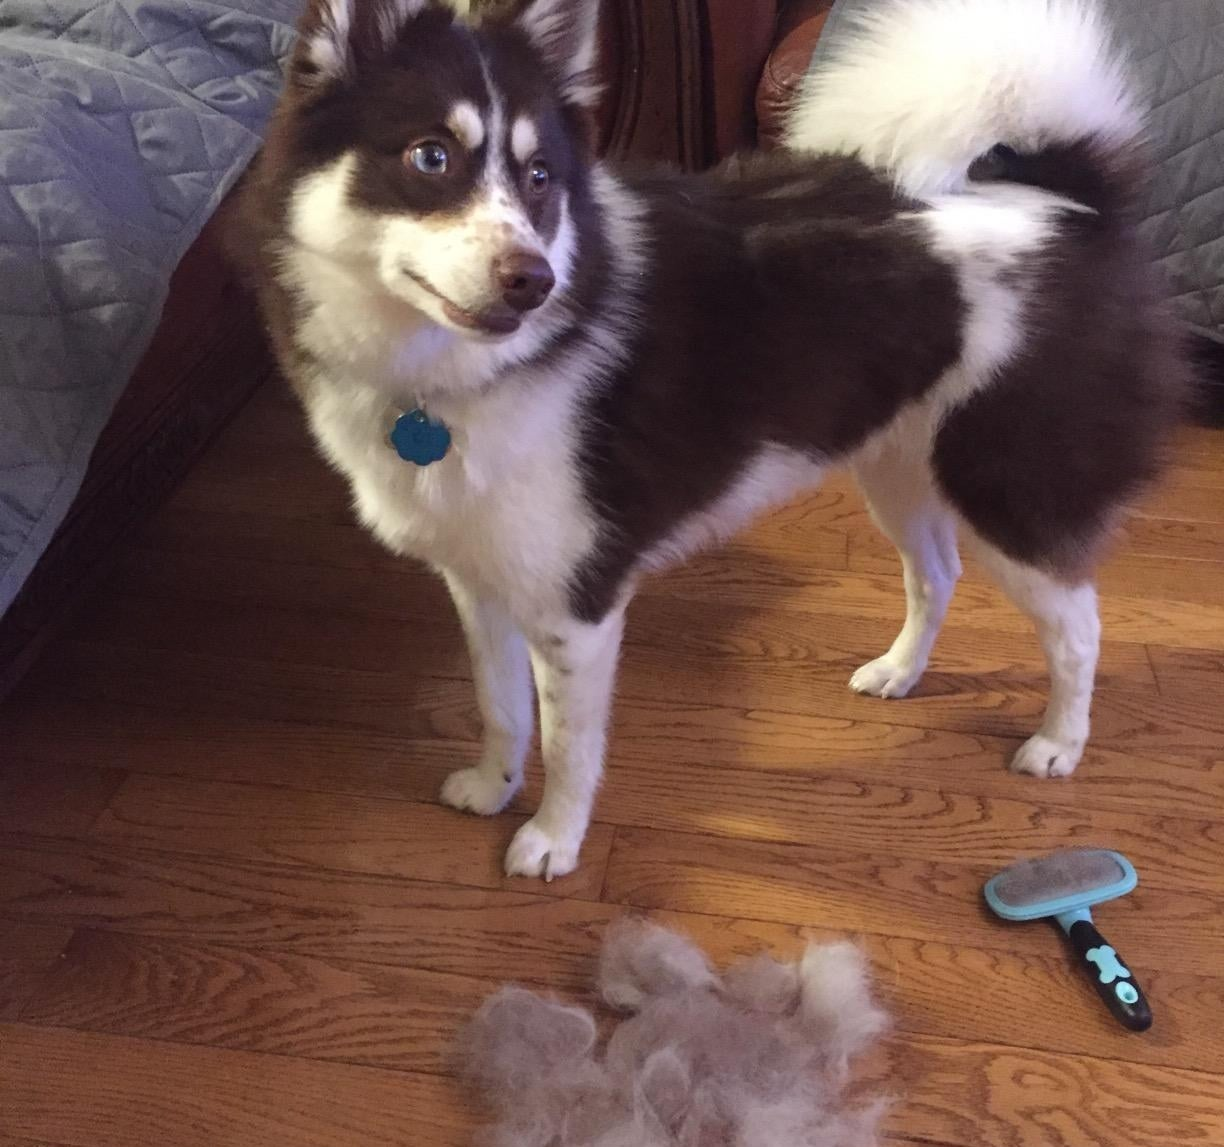 The brush next to a groomed dog and a lump of fur